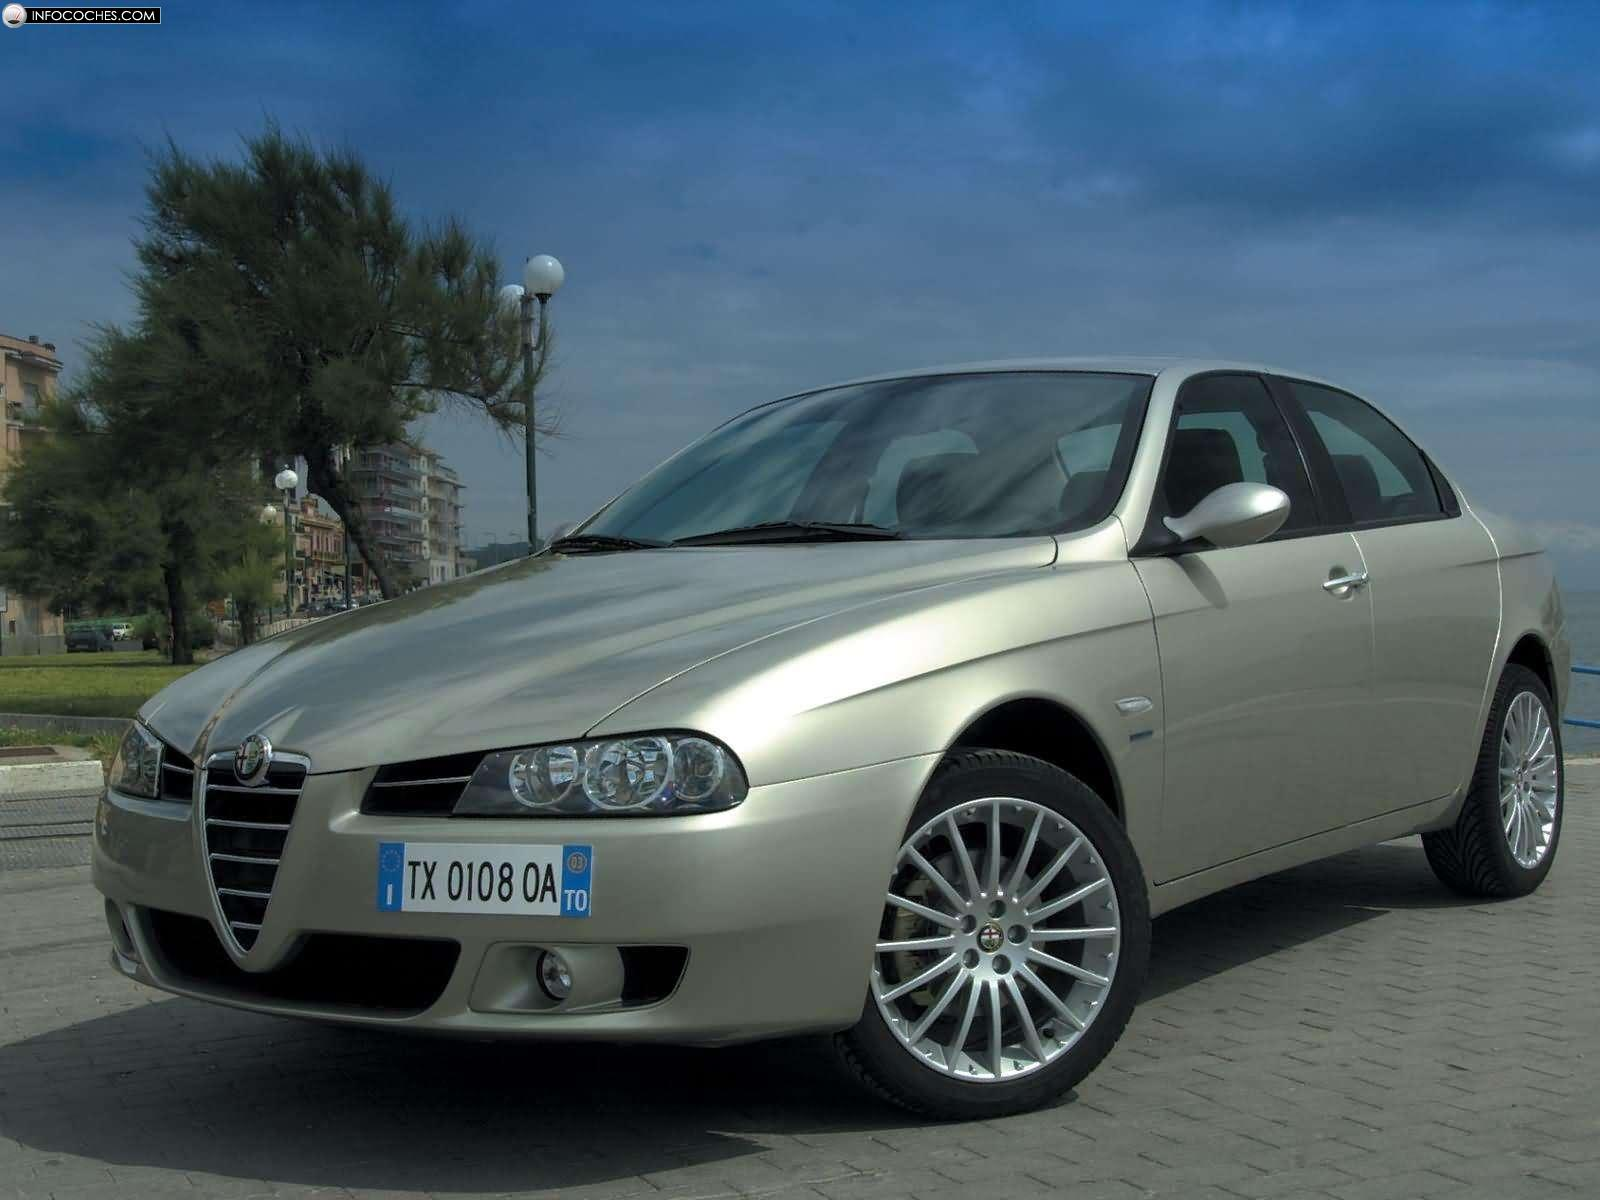 Alfa romeo 156 photo - 2